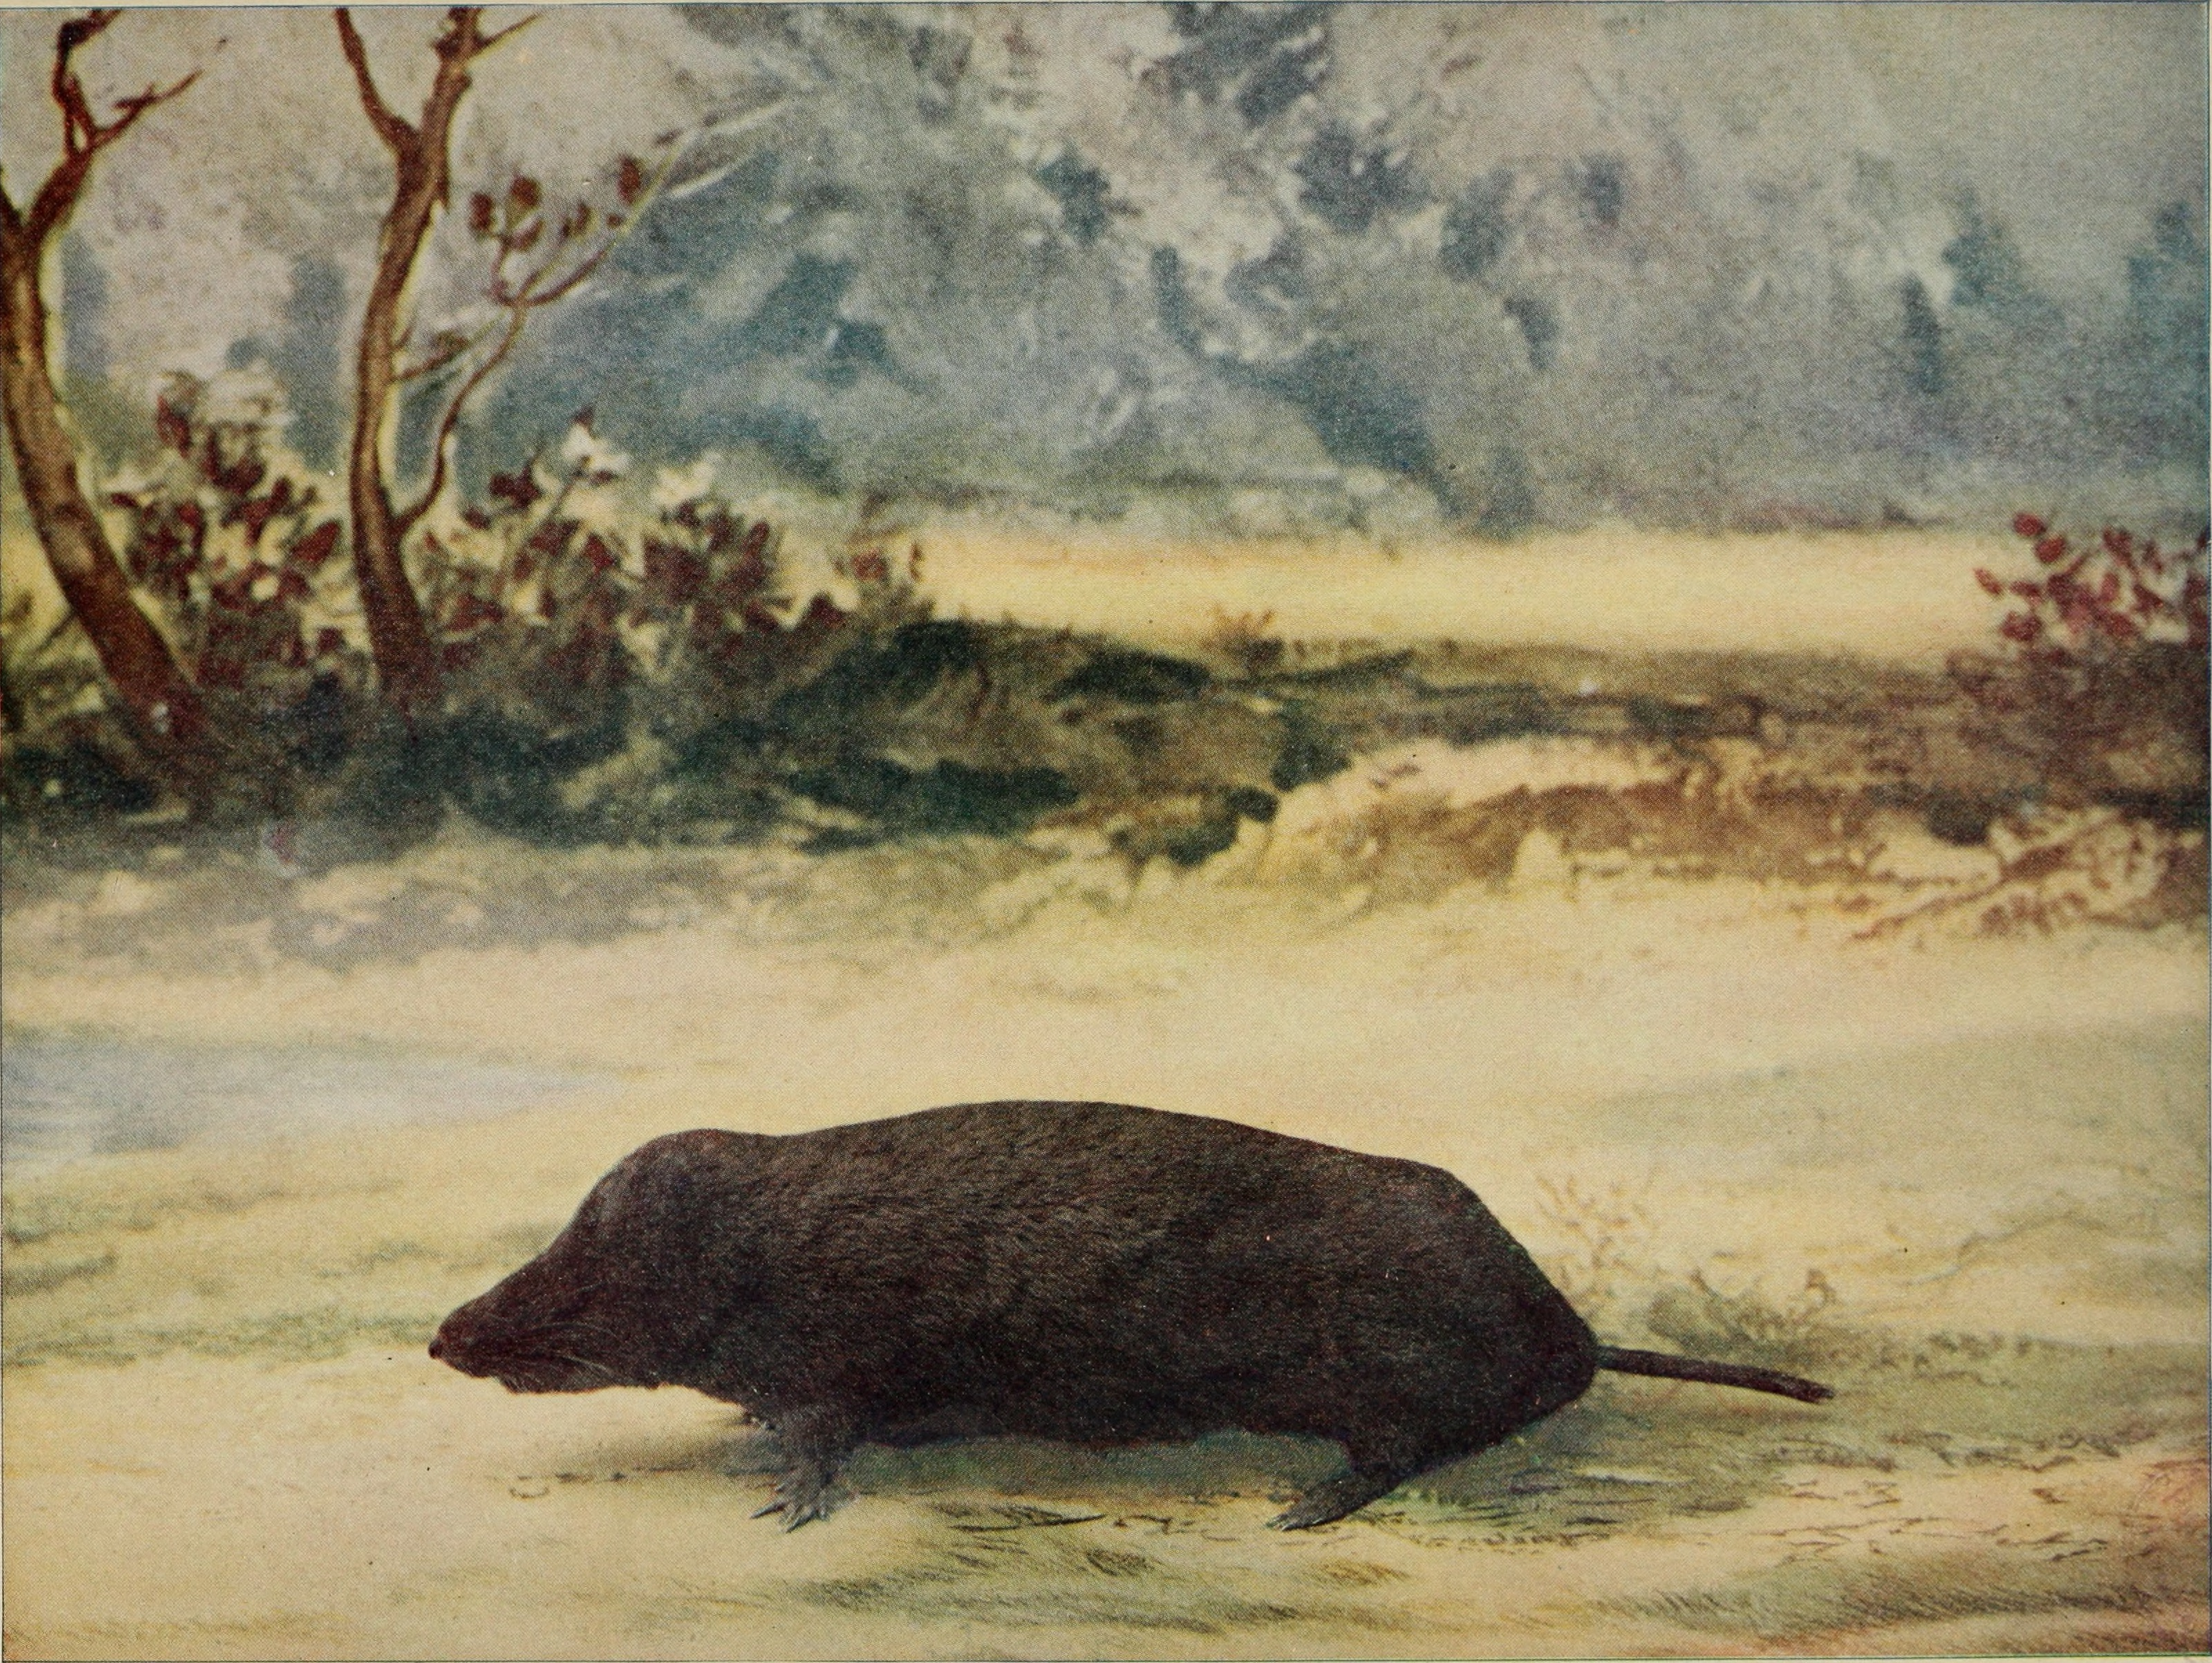 Image of Brewer's mole